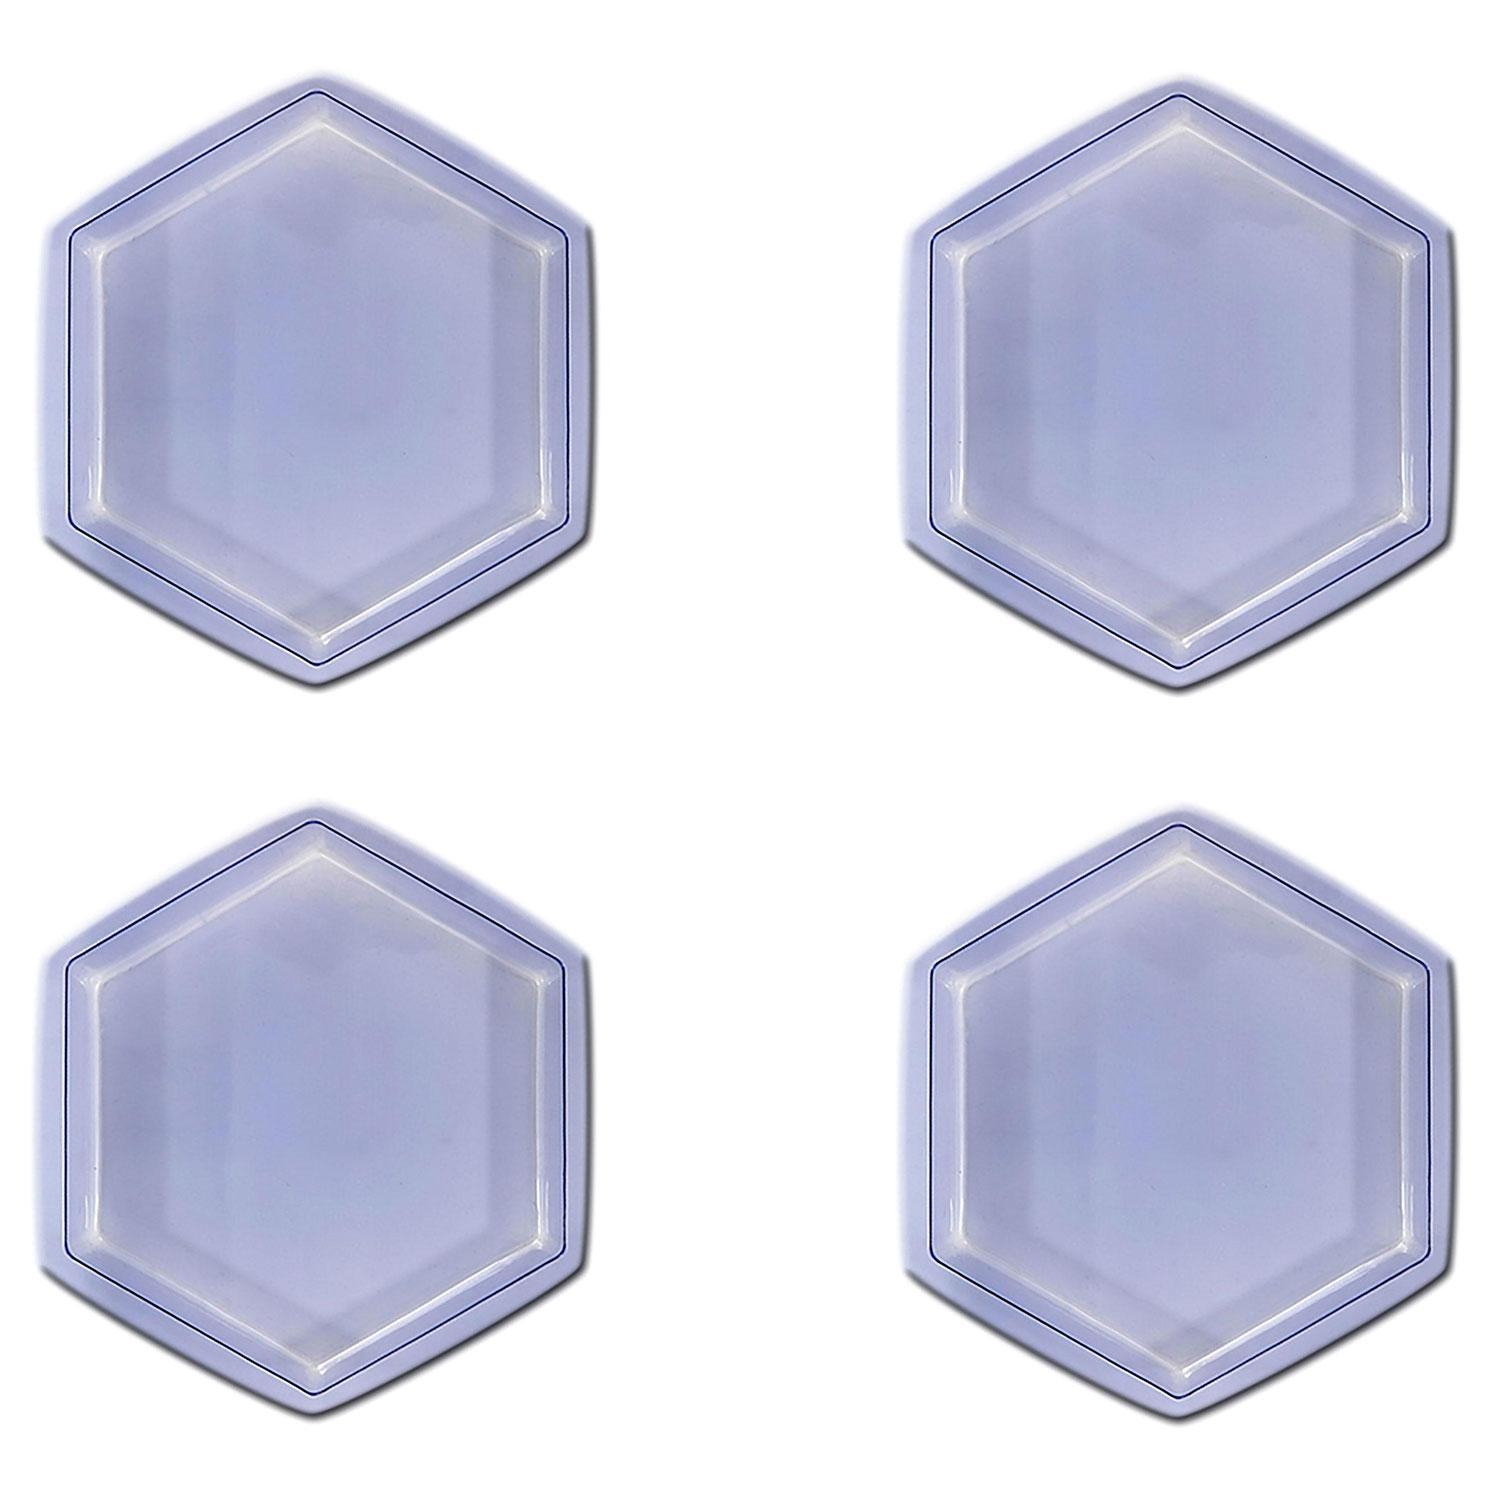 8 Clear Hexagon Stepping Stone Mold - 4 Pack